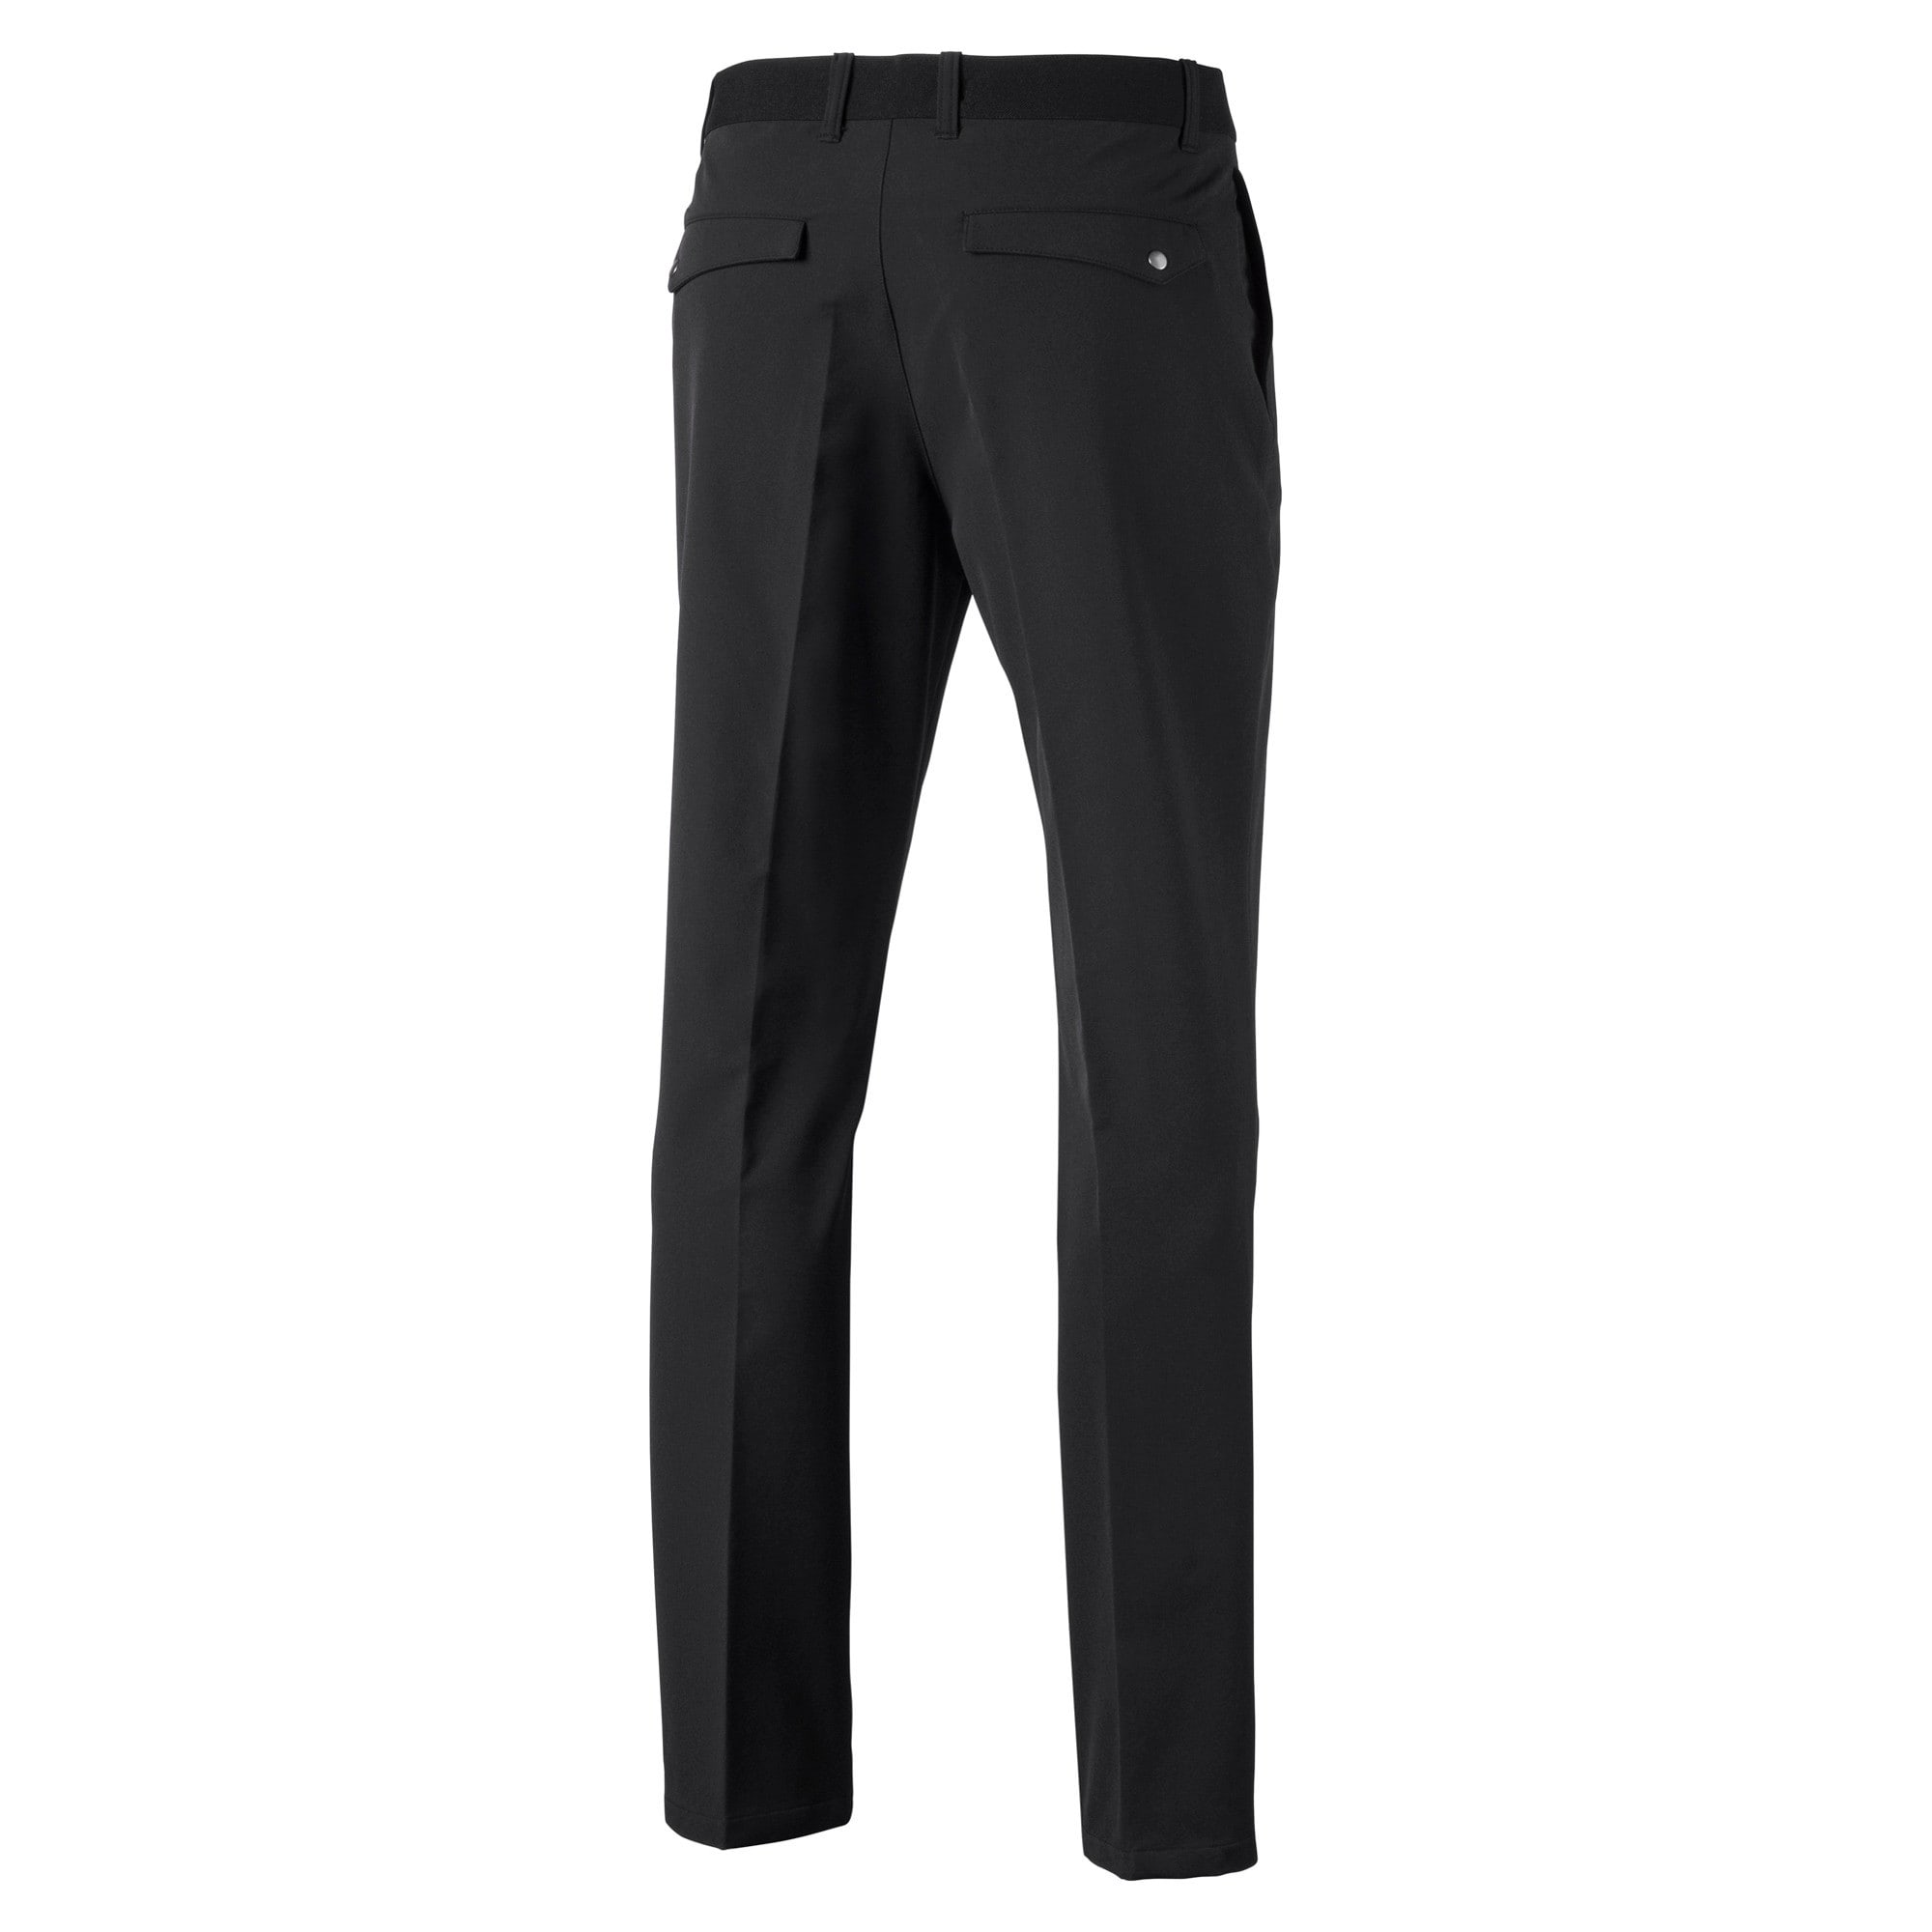 Thumbnail 5 of Stretch Utility 2.0 Herren Golf Hose, Puma Black, medium